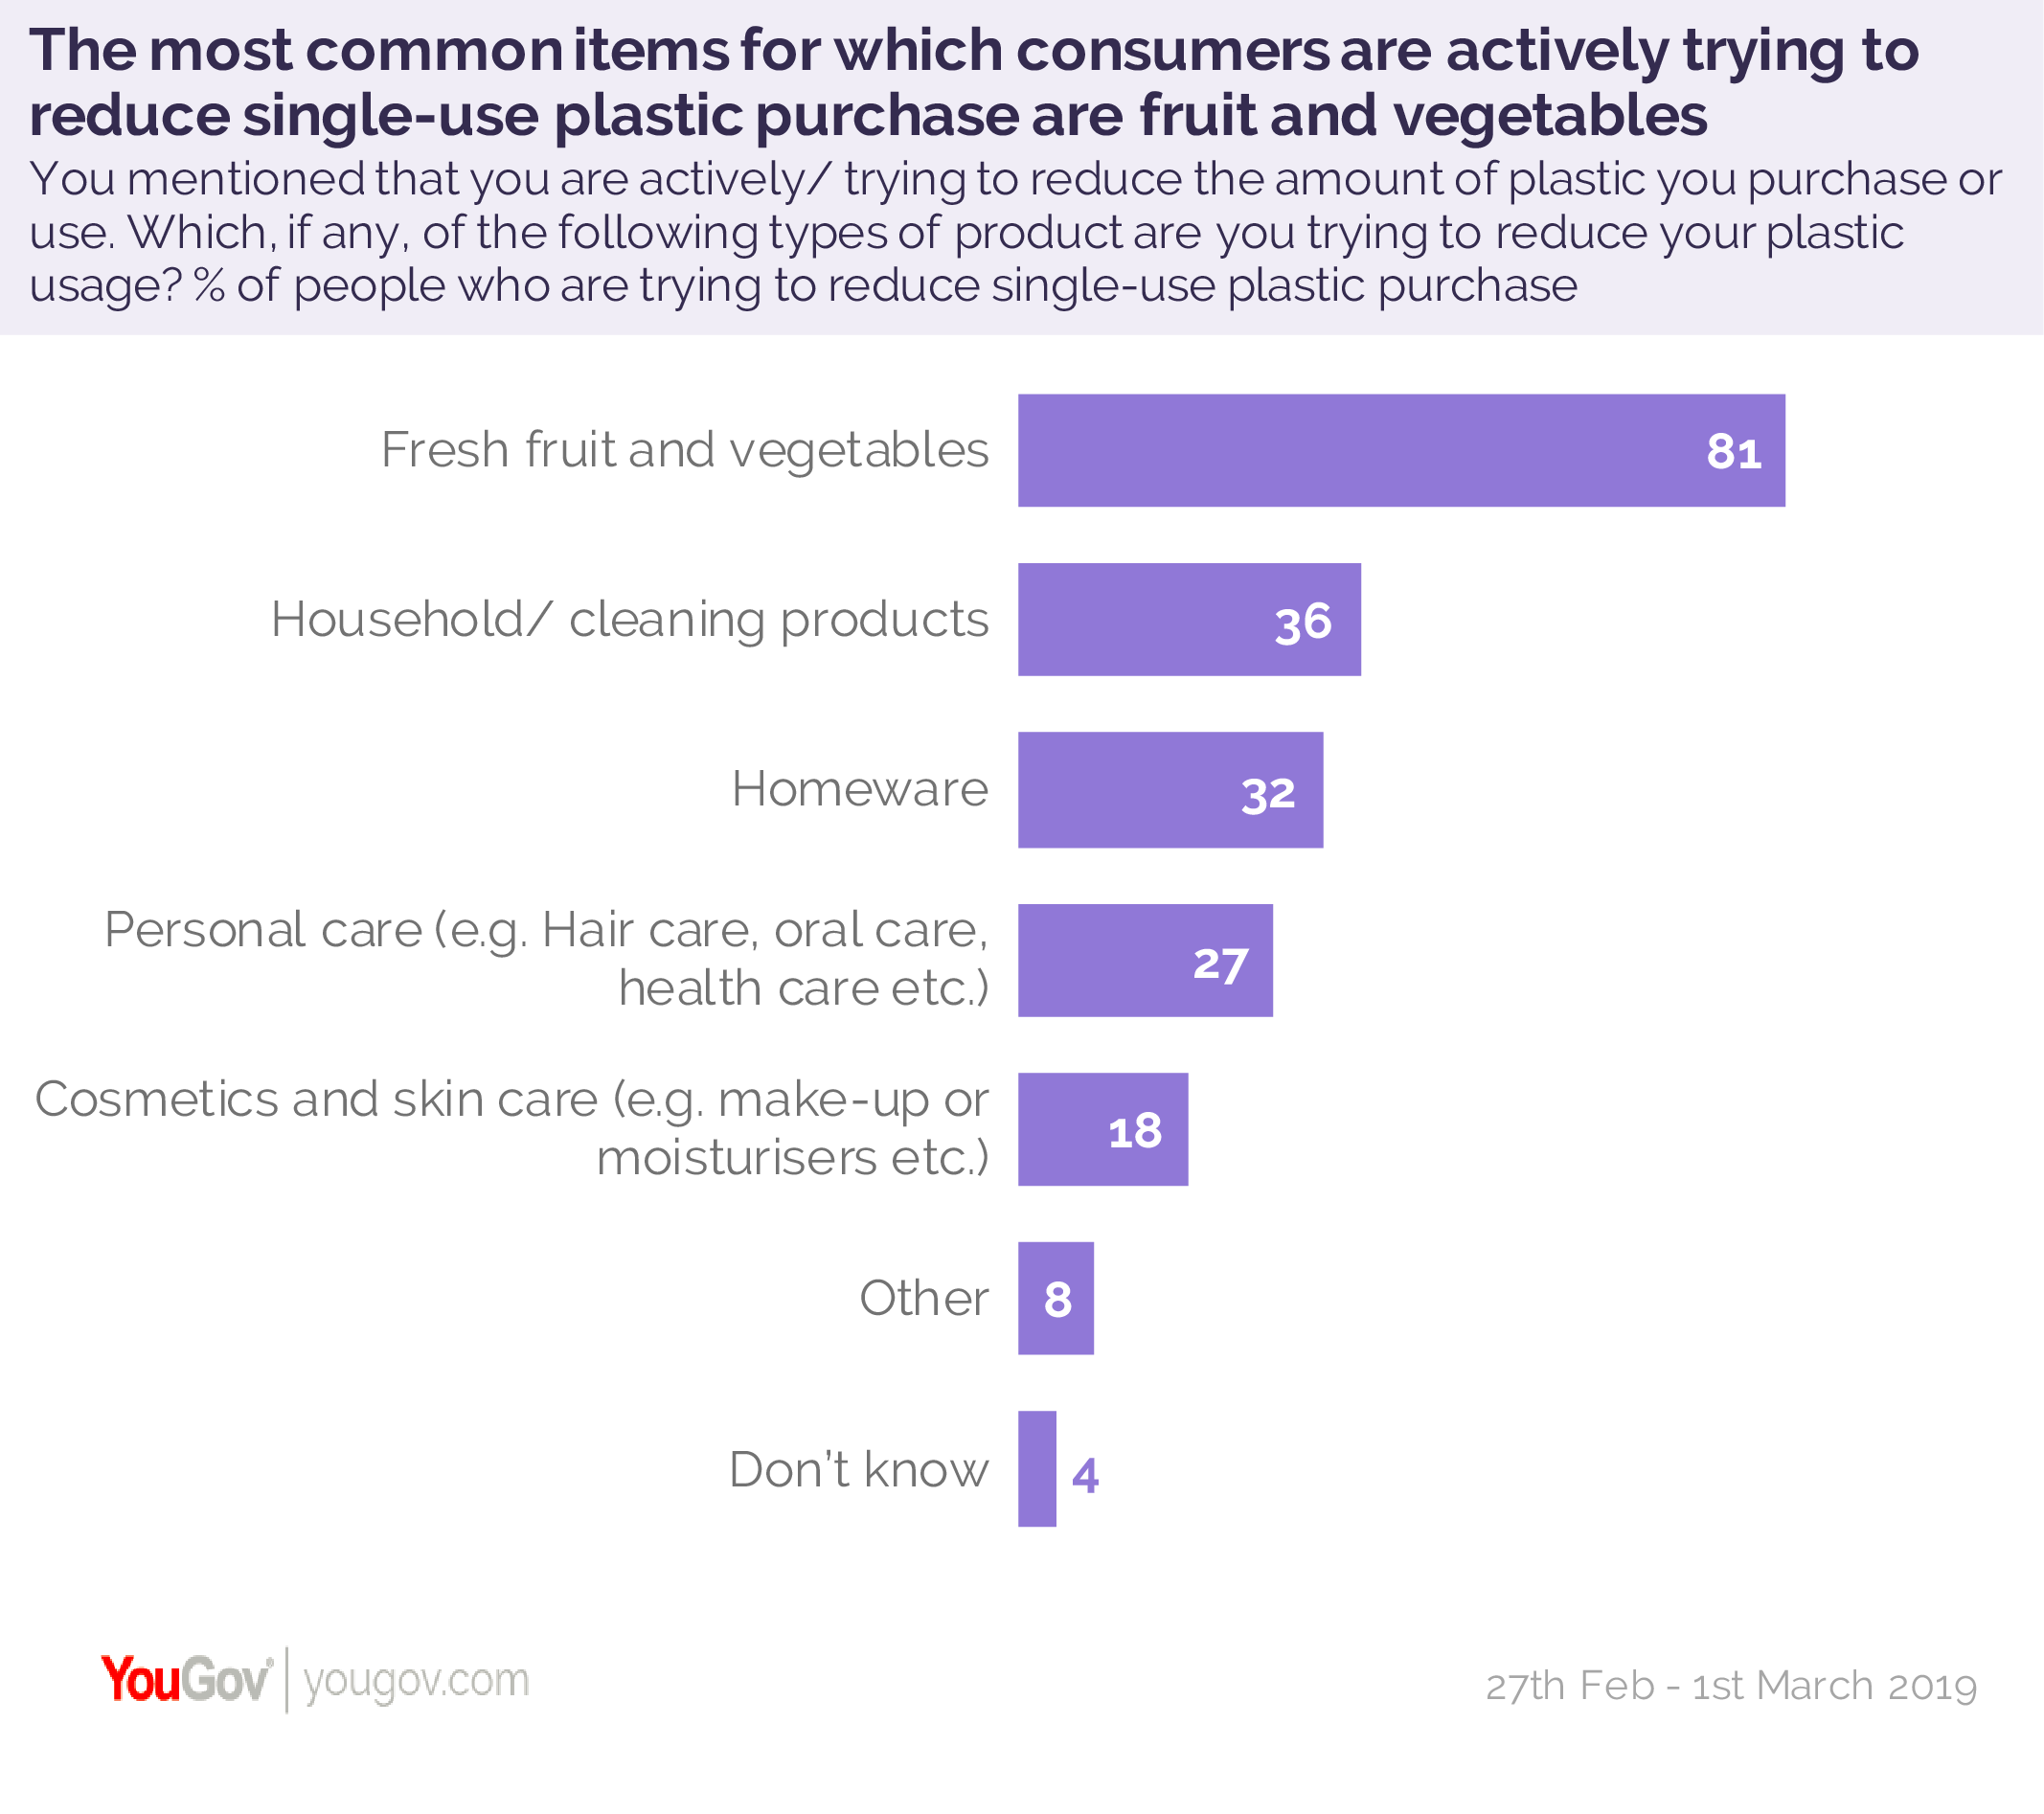 Most Brits support ban on harmful plastic packaging | YouGov